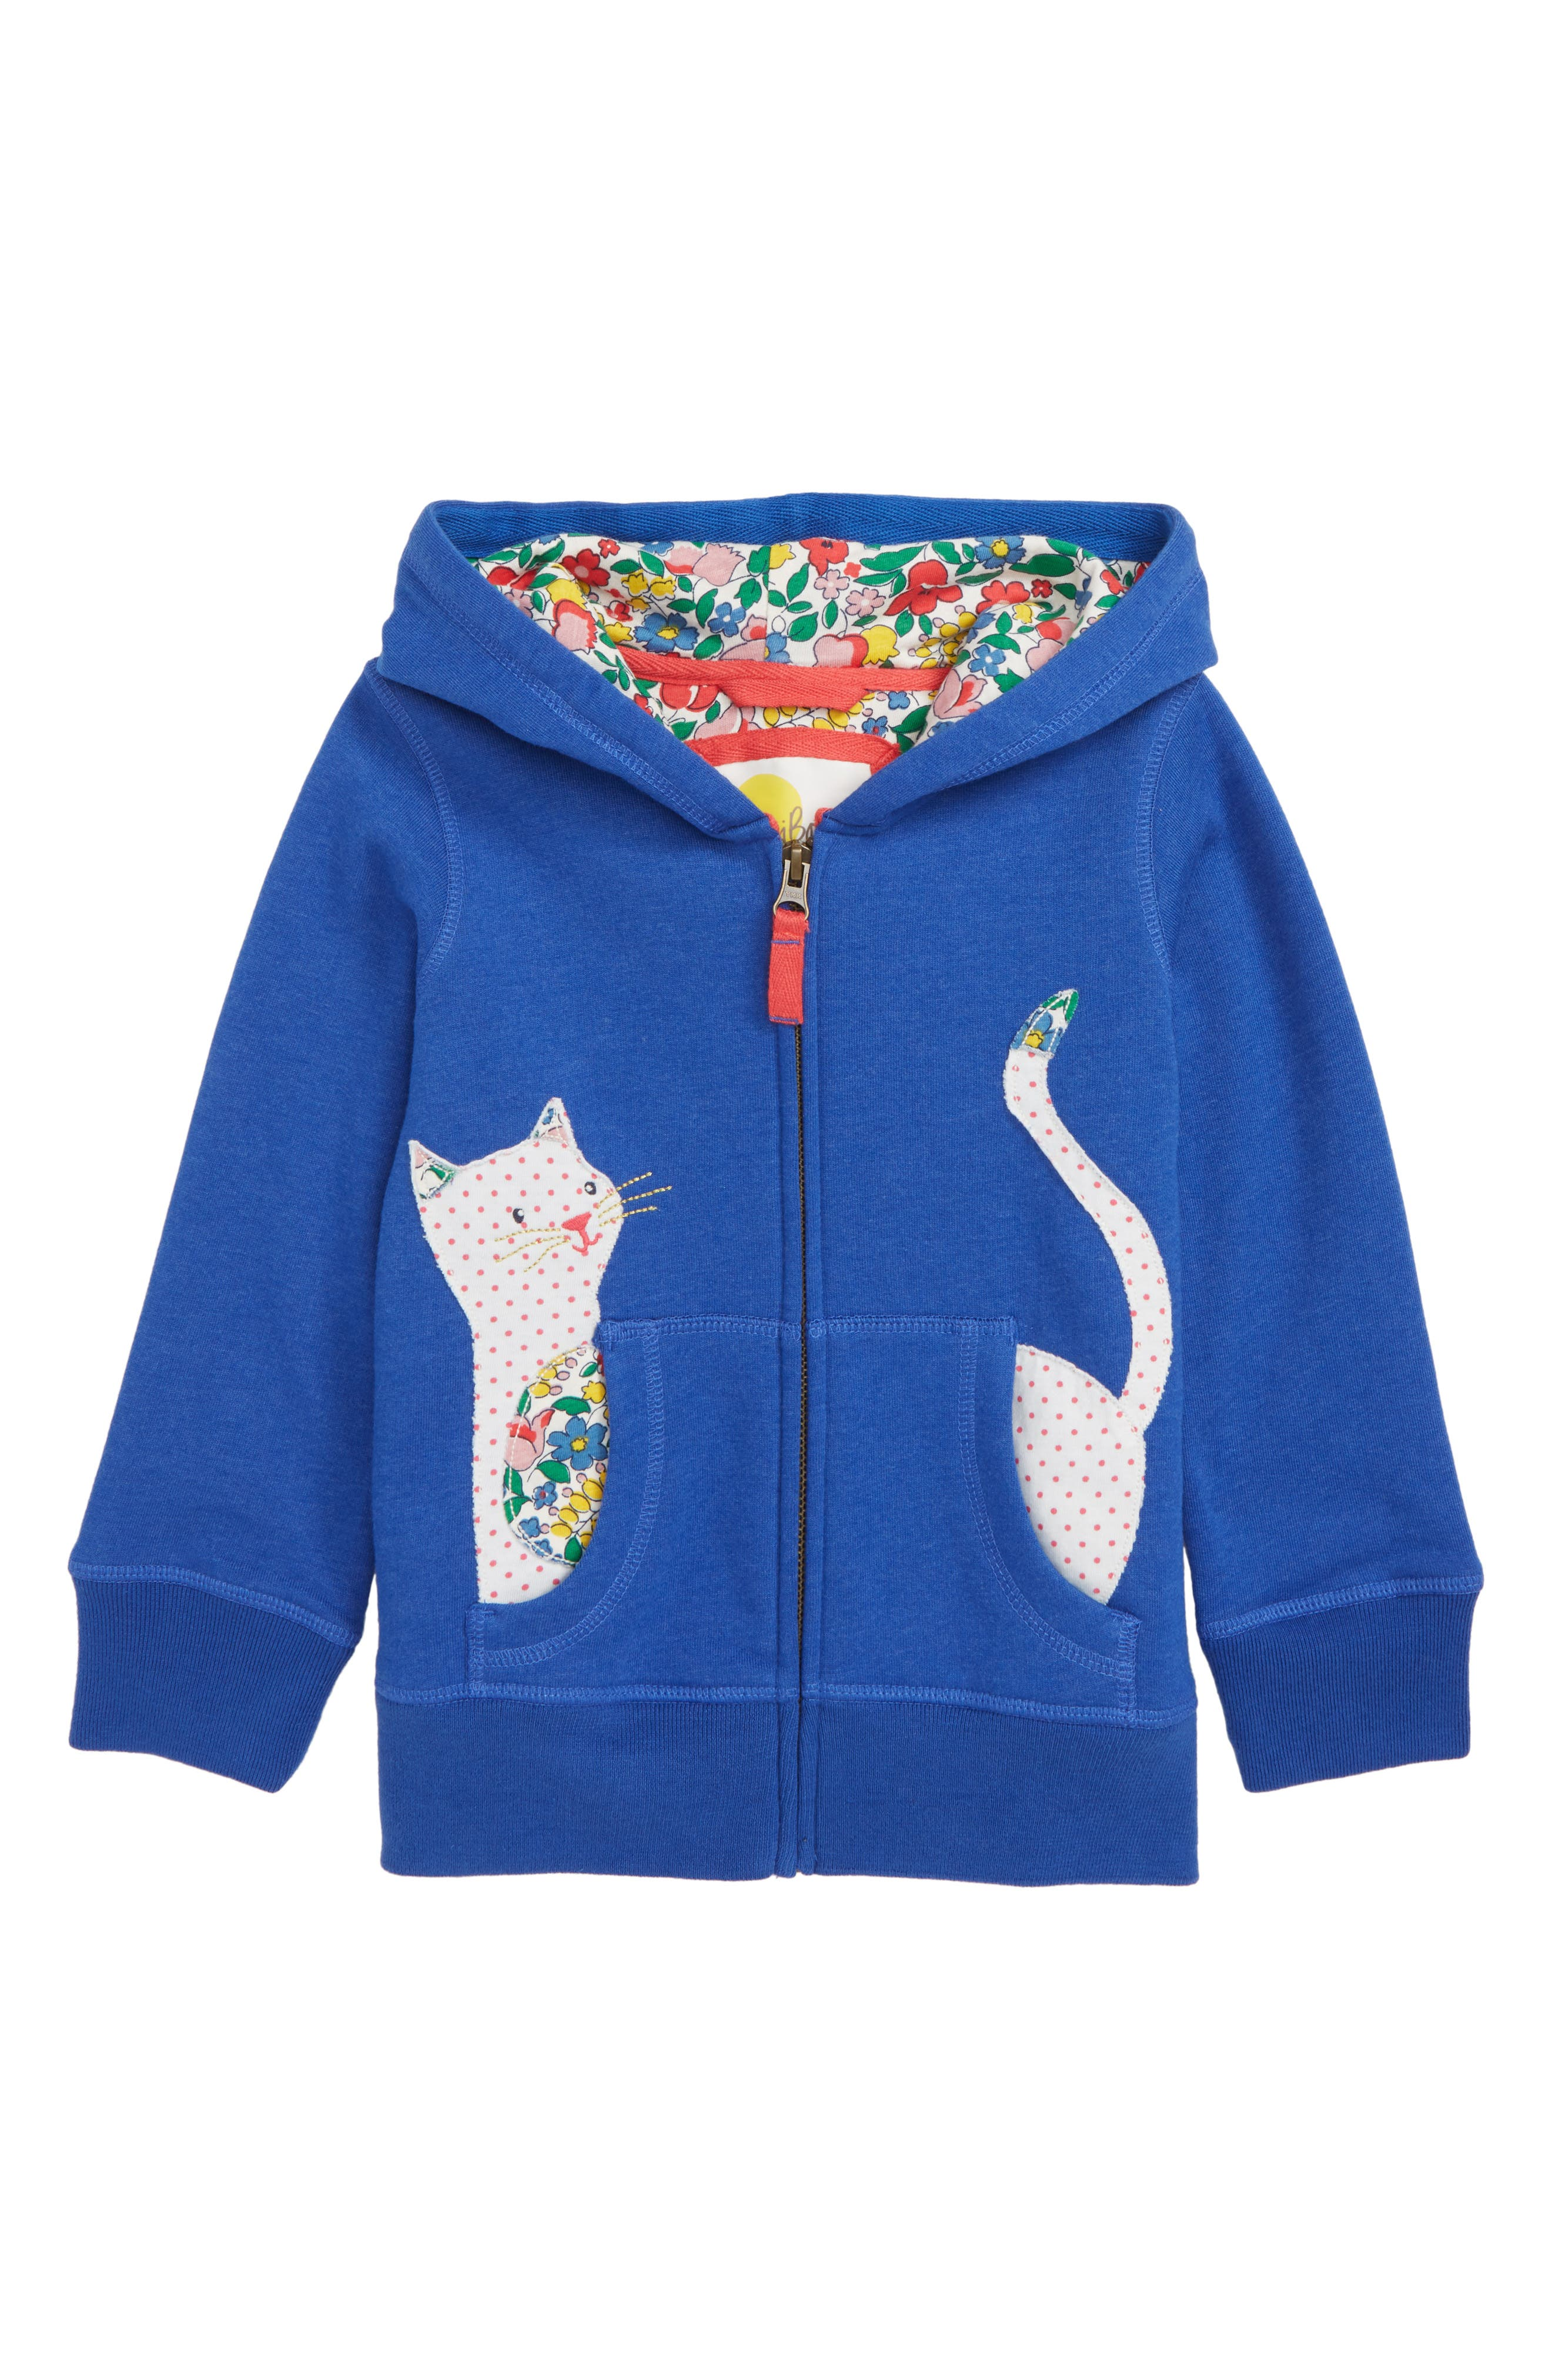 Novelty Front Zip Hoodie,                             Main thumbnail 1, color,                             COBALT BLUE PEGASUS